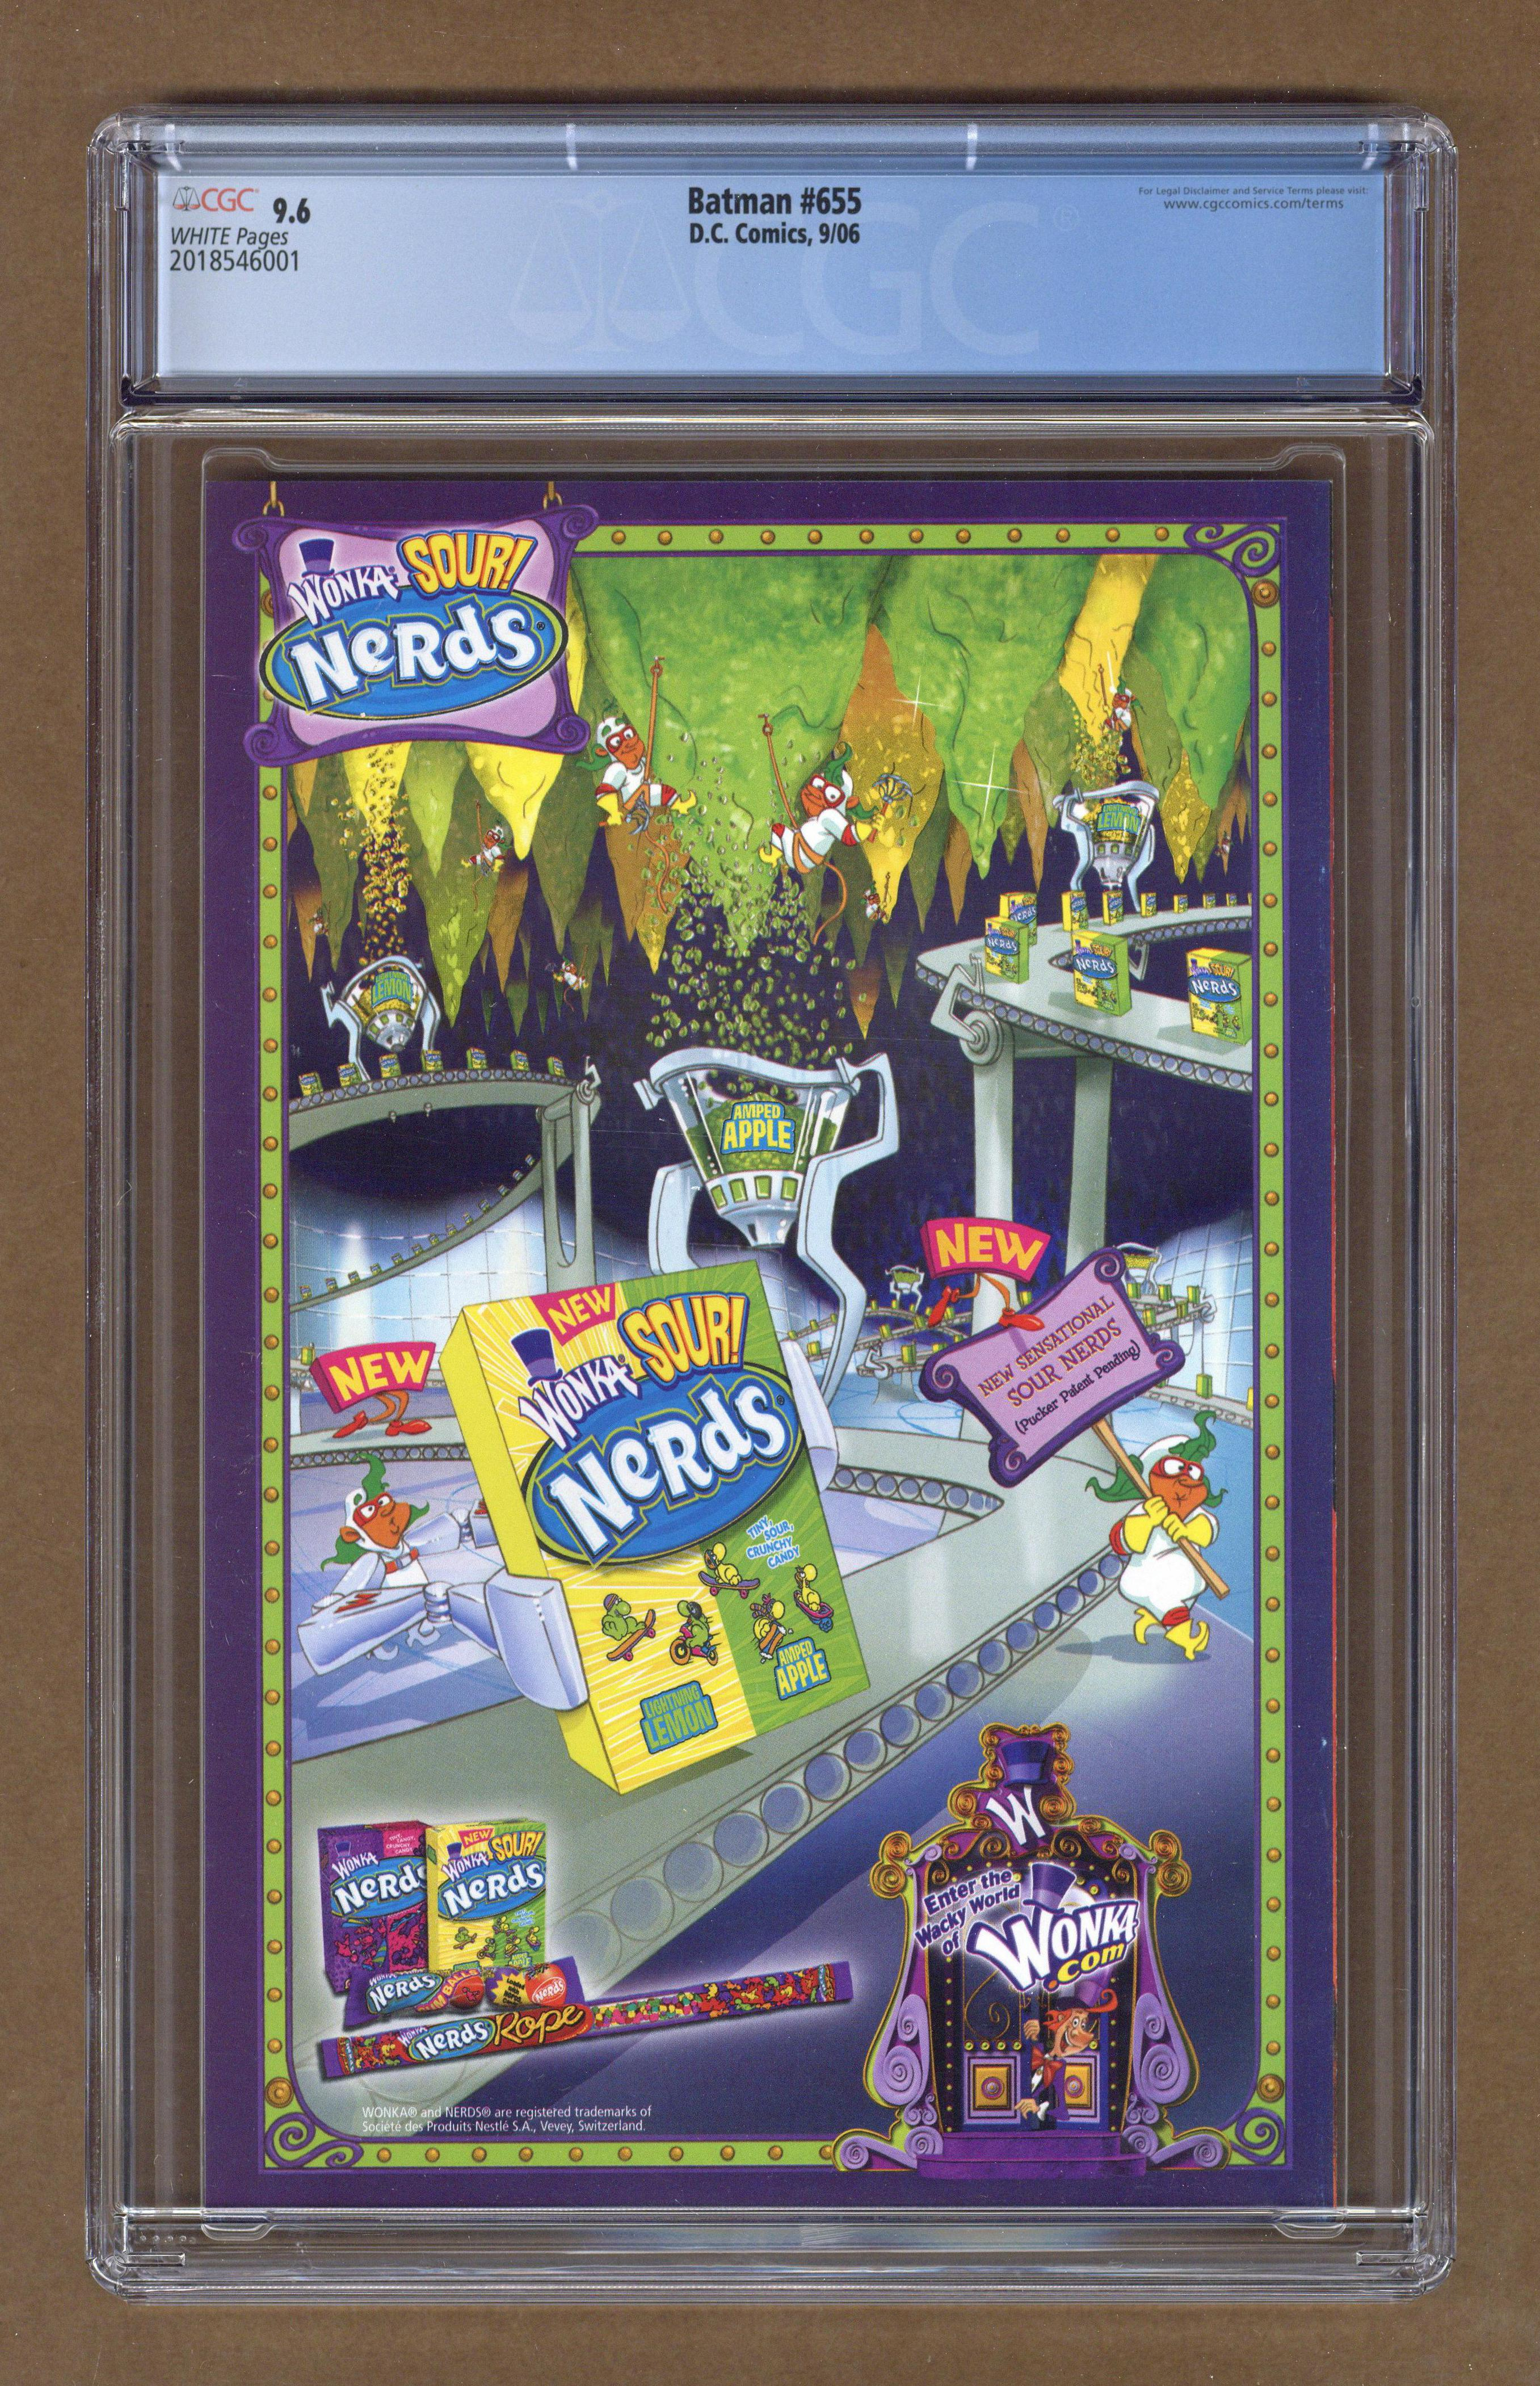 Uncommon World/'s Finest NM with Card Sun City Games!!! Mento 020